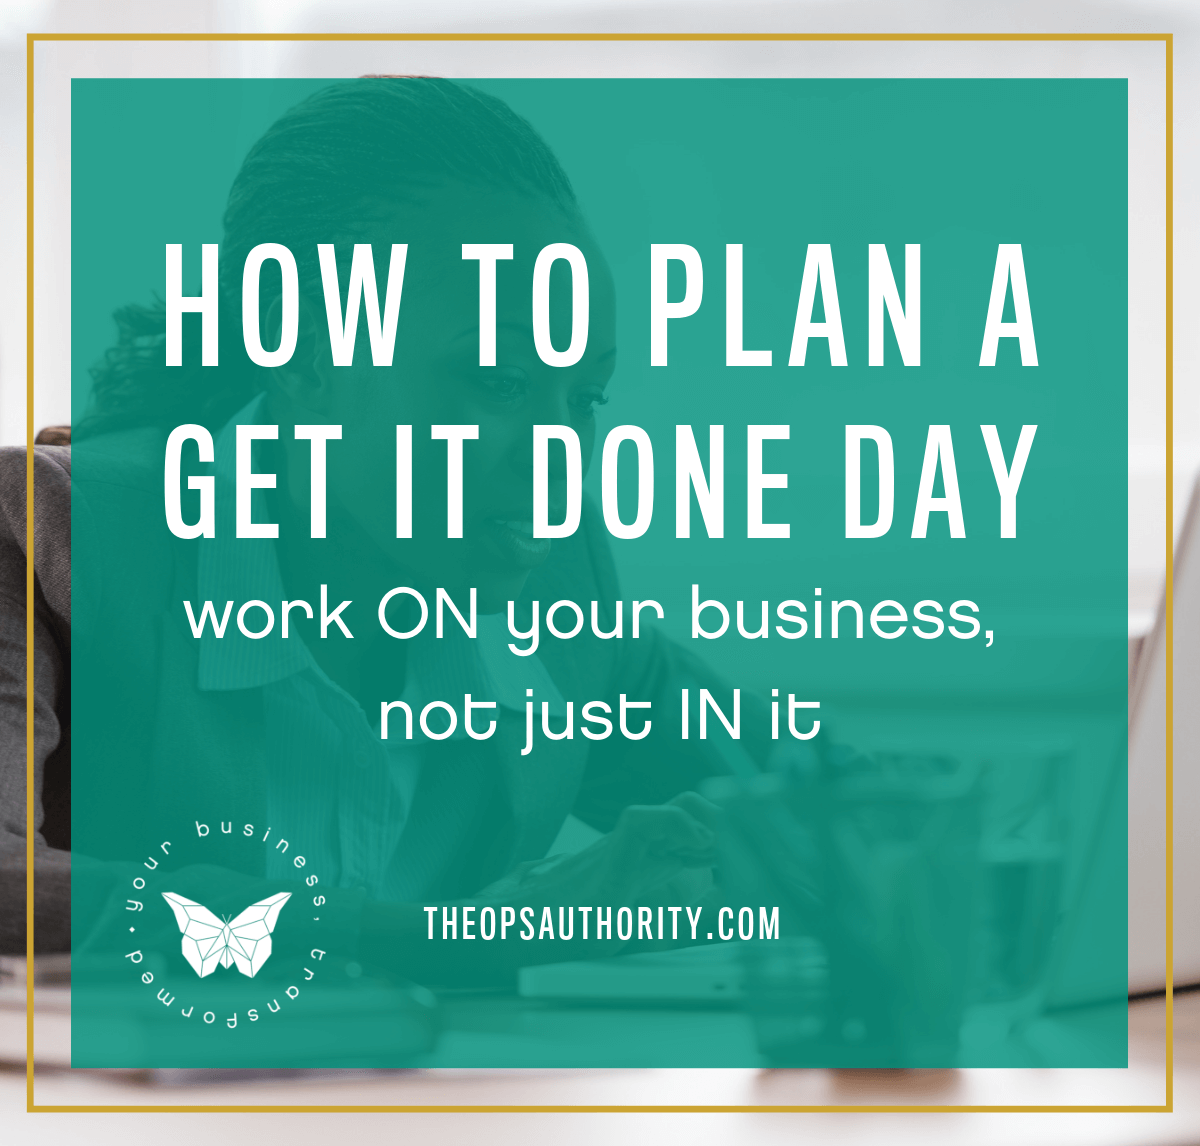 How to Plan a Get it Done Day blog